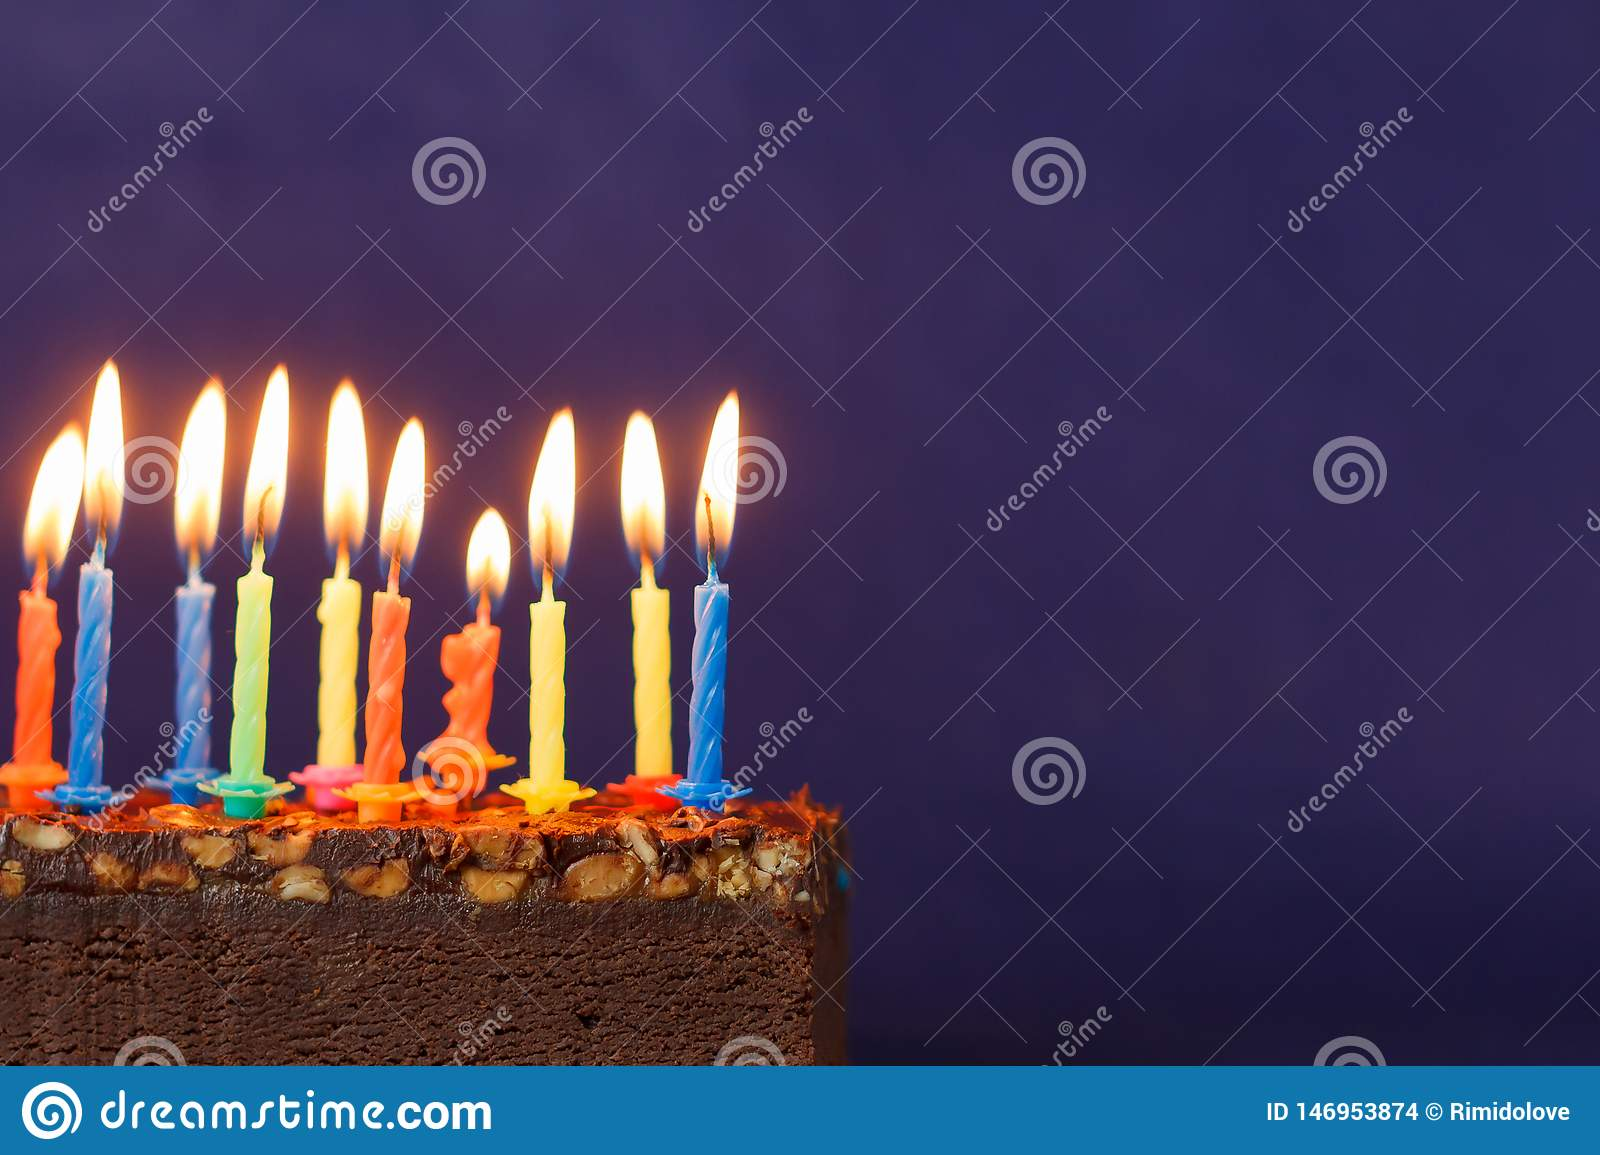 Happy Birthday Brownie Cake with Peanuts, Salted Caramel and Colorful Burning Candles on the Violet Background. Copy Space for